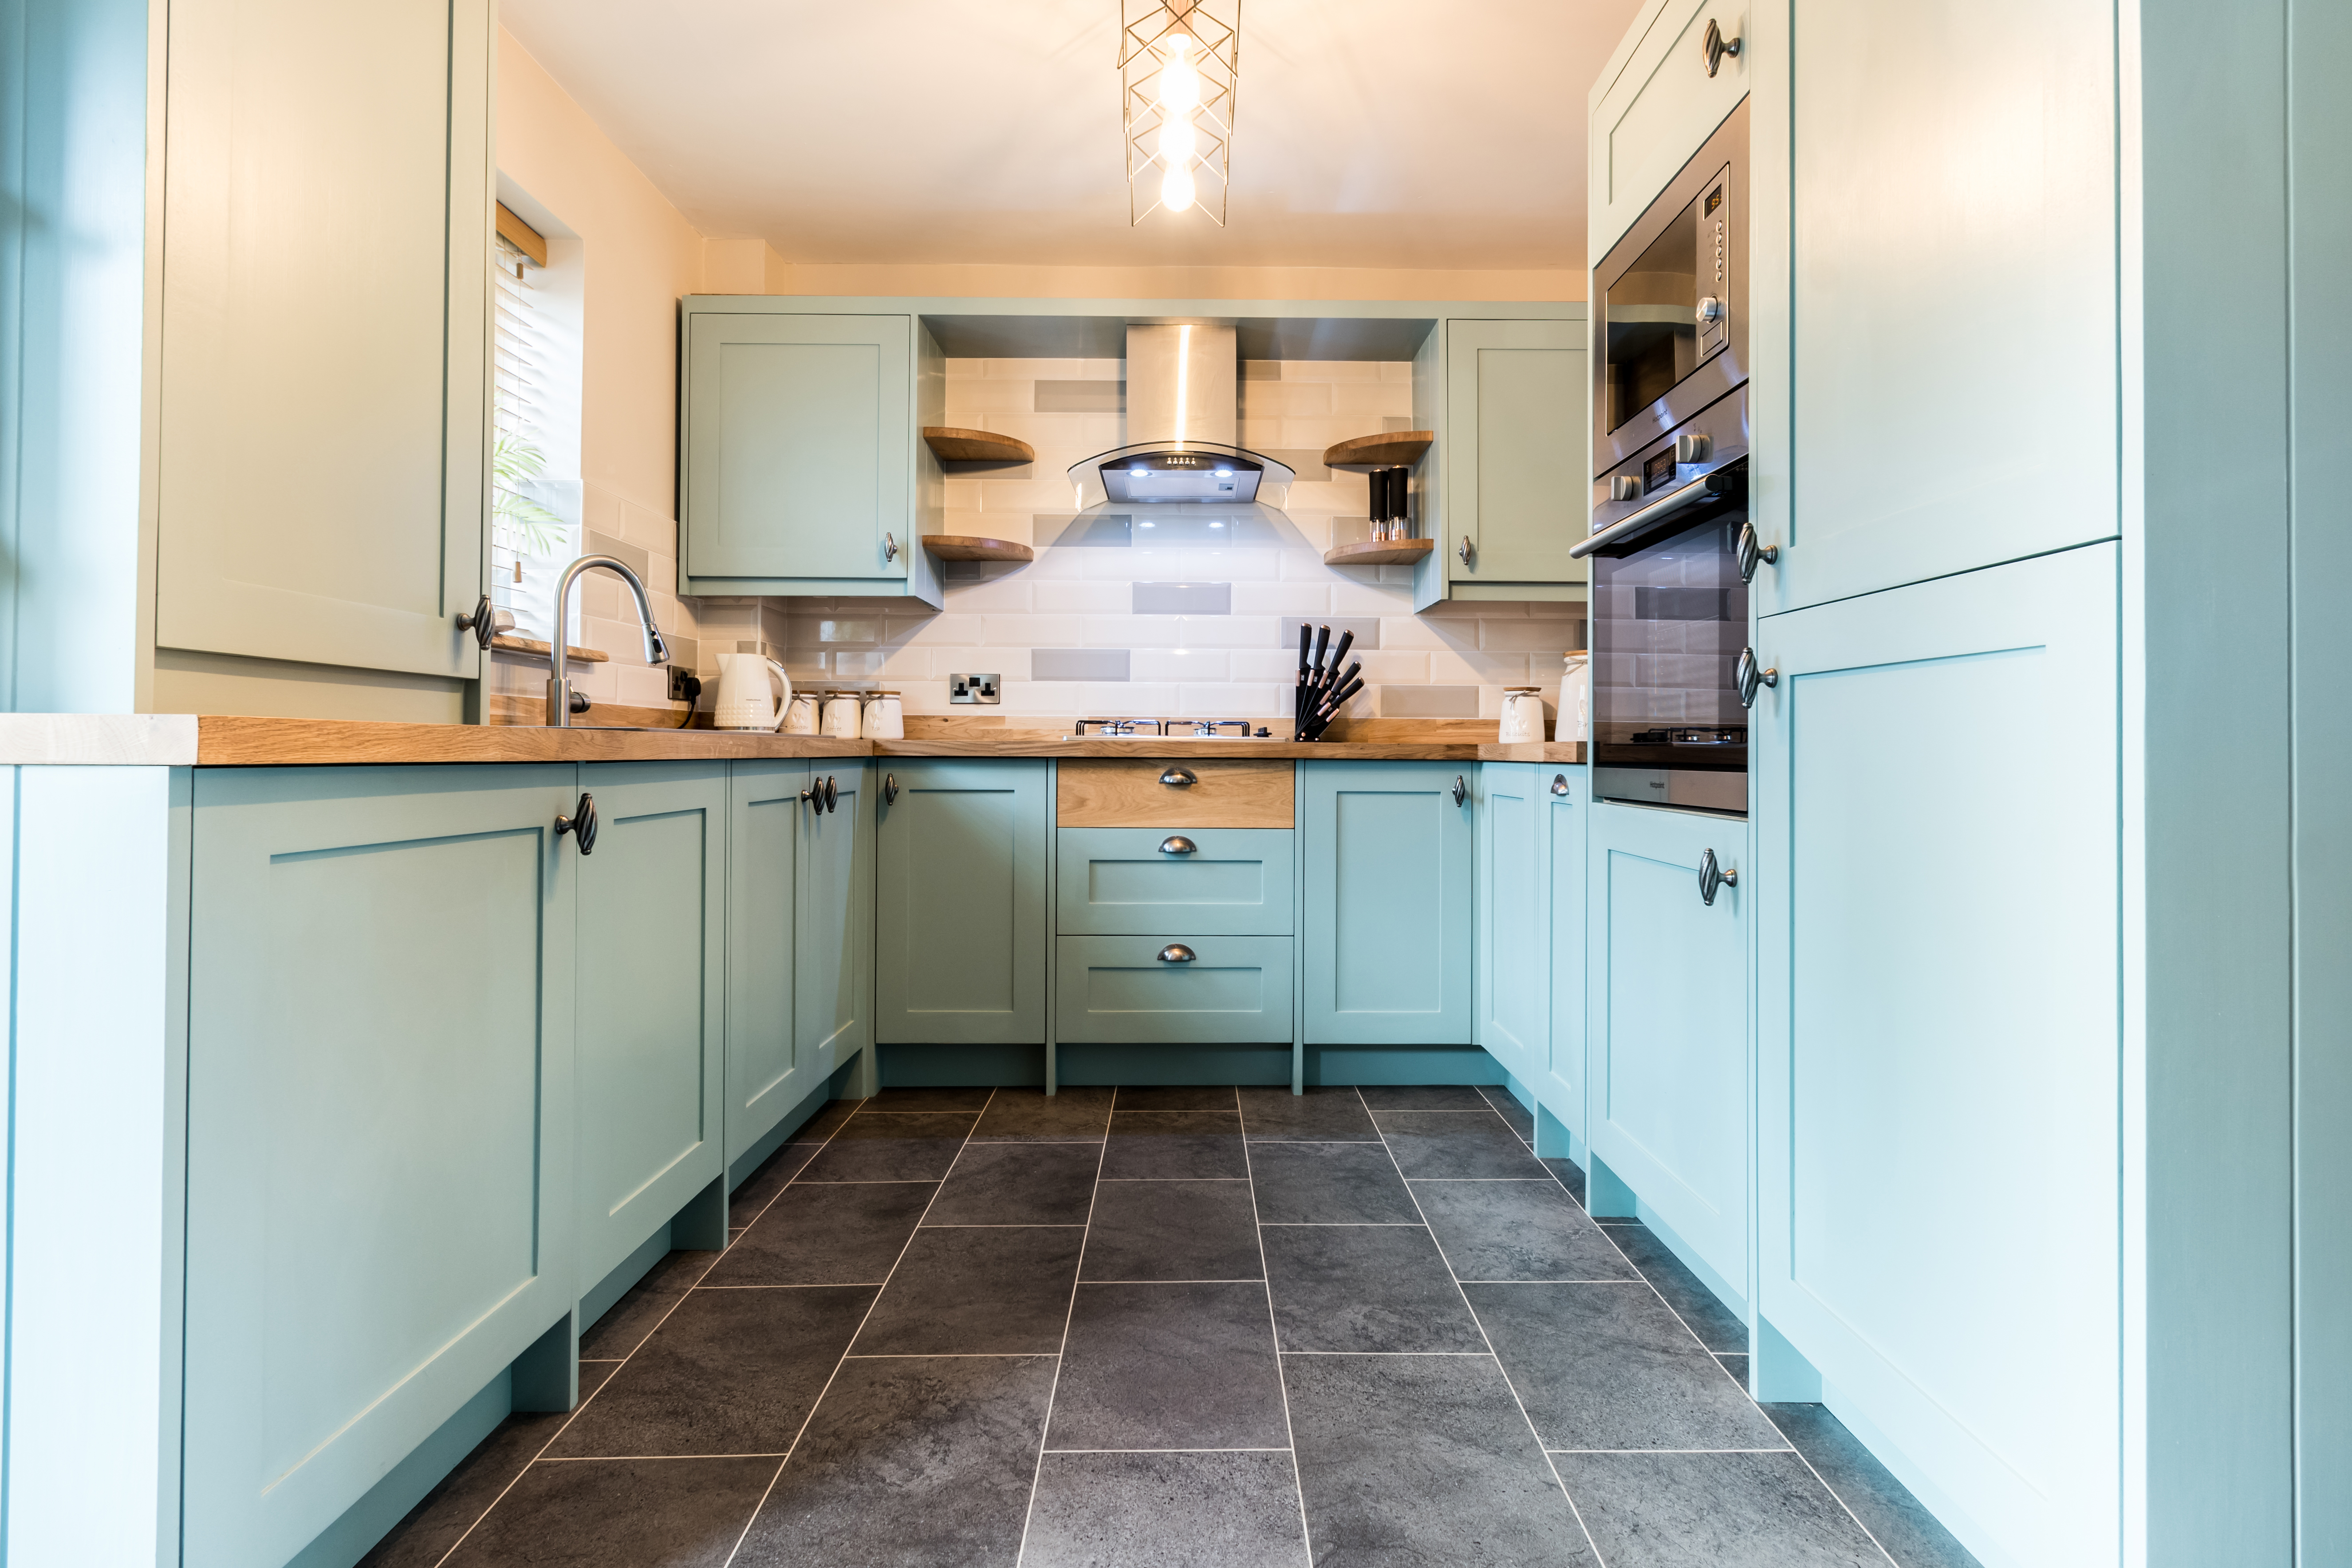 Bespoke Joinery And Handmade Kitchens In Skipton And The